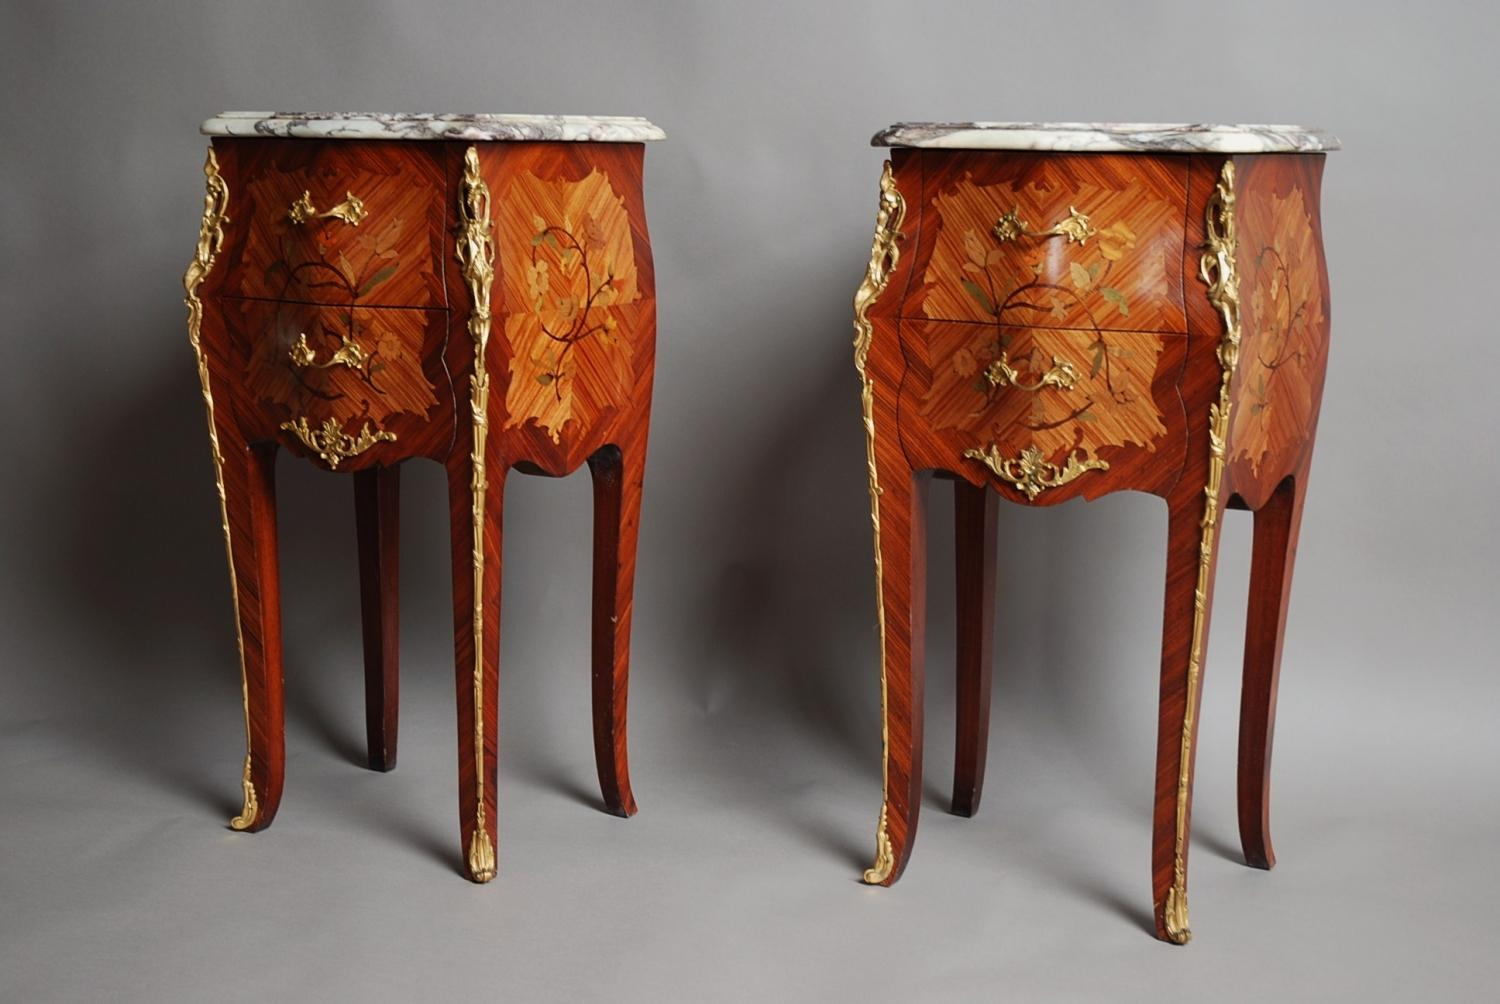 Pair of Kingwood bedside commodes